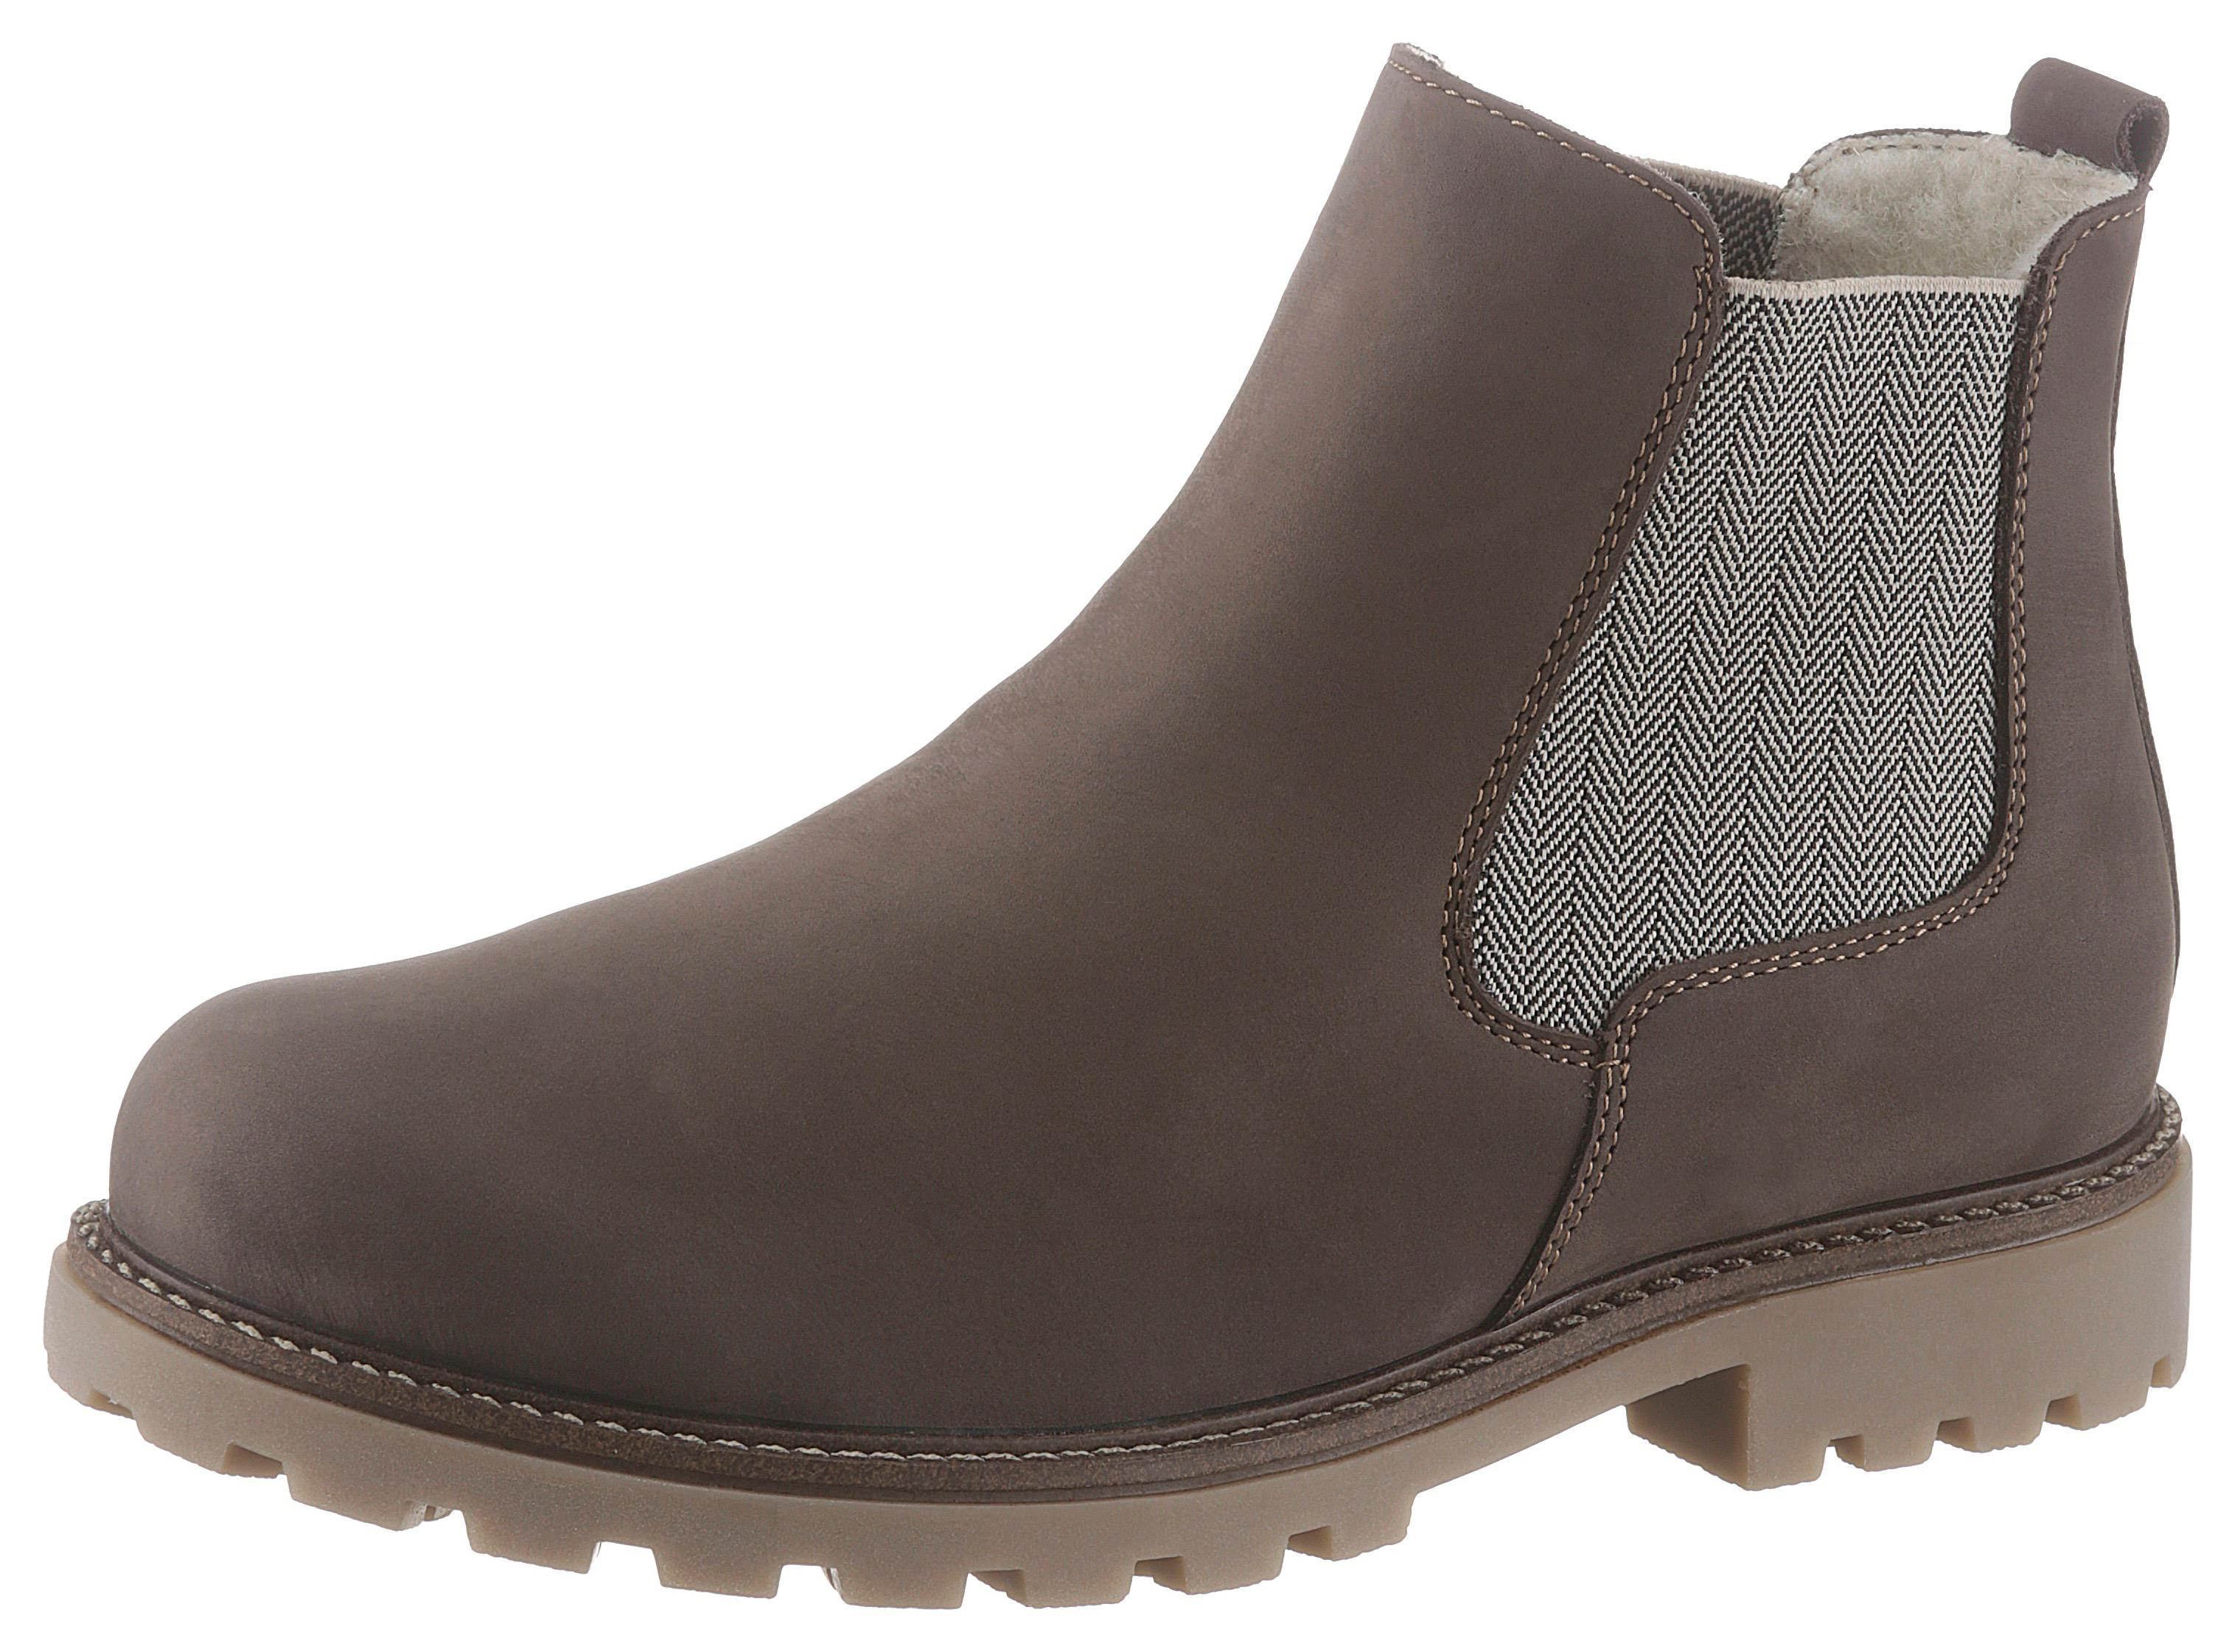 Remonte Chelseaboots | Schuhe > Boots > Chelsea-Boots | Grau | Remonte